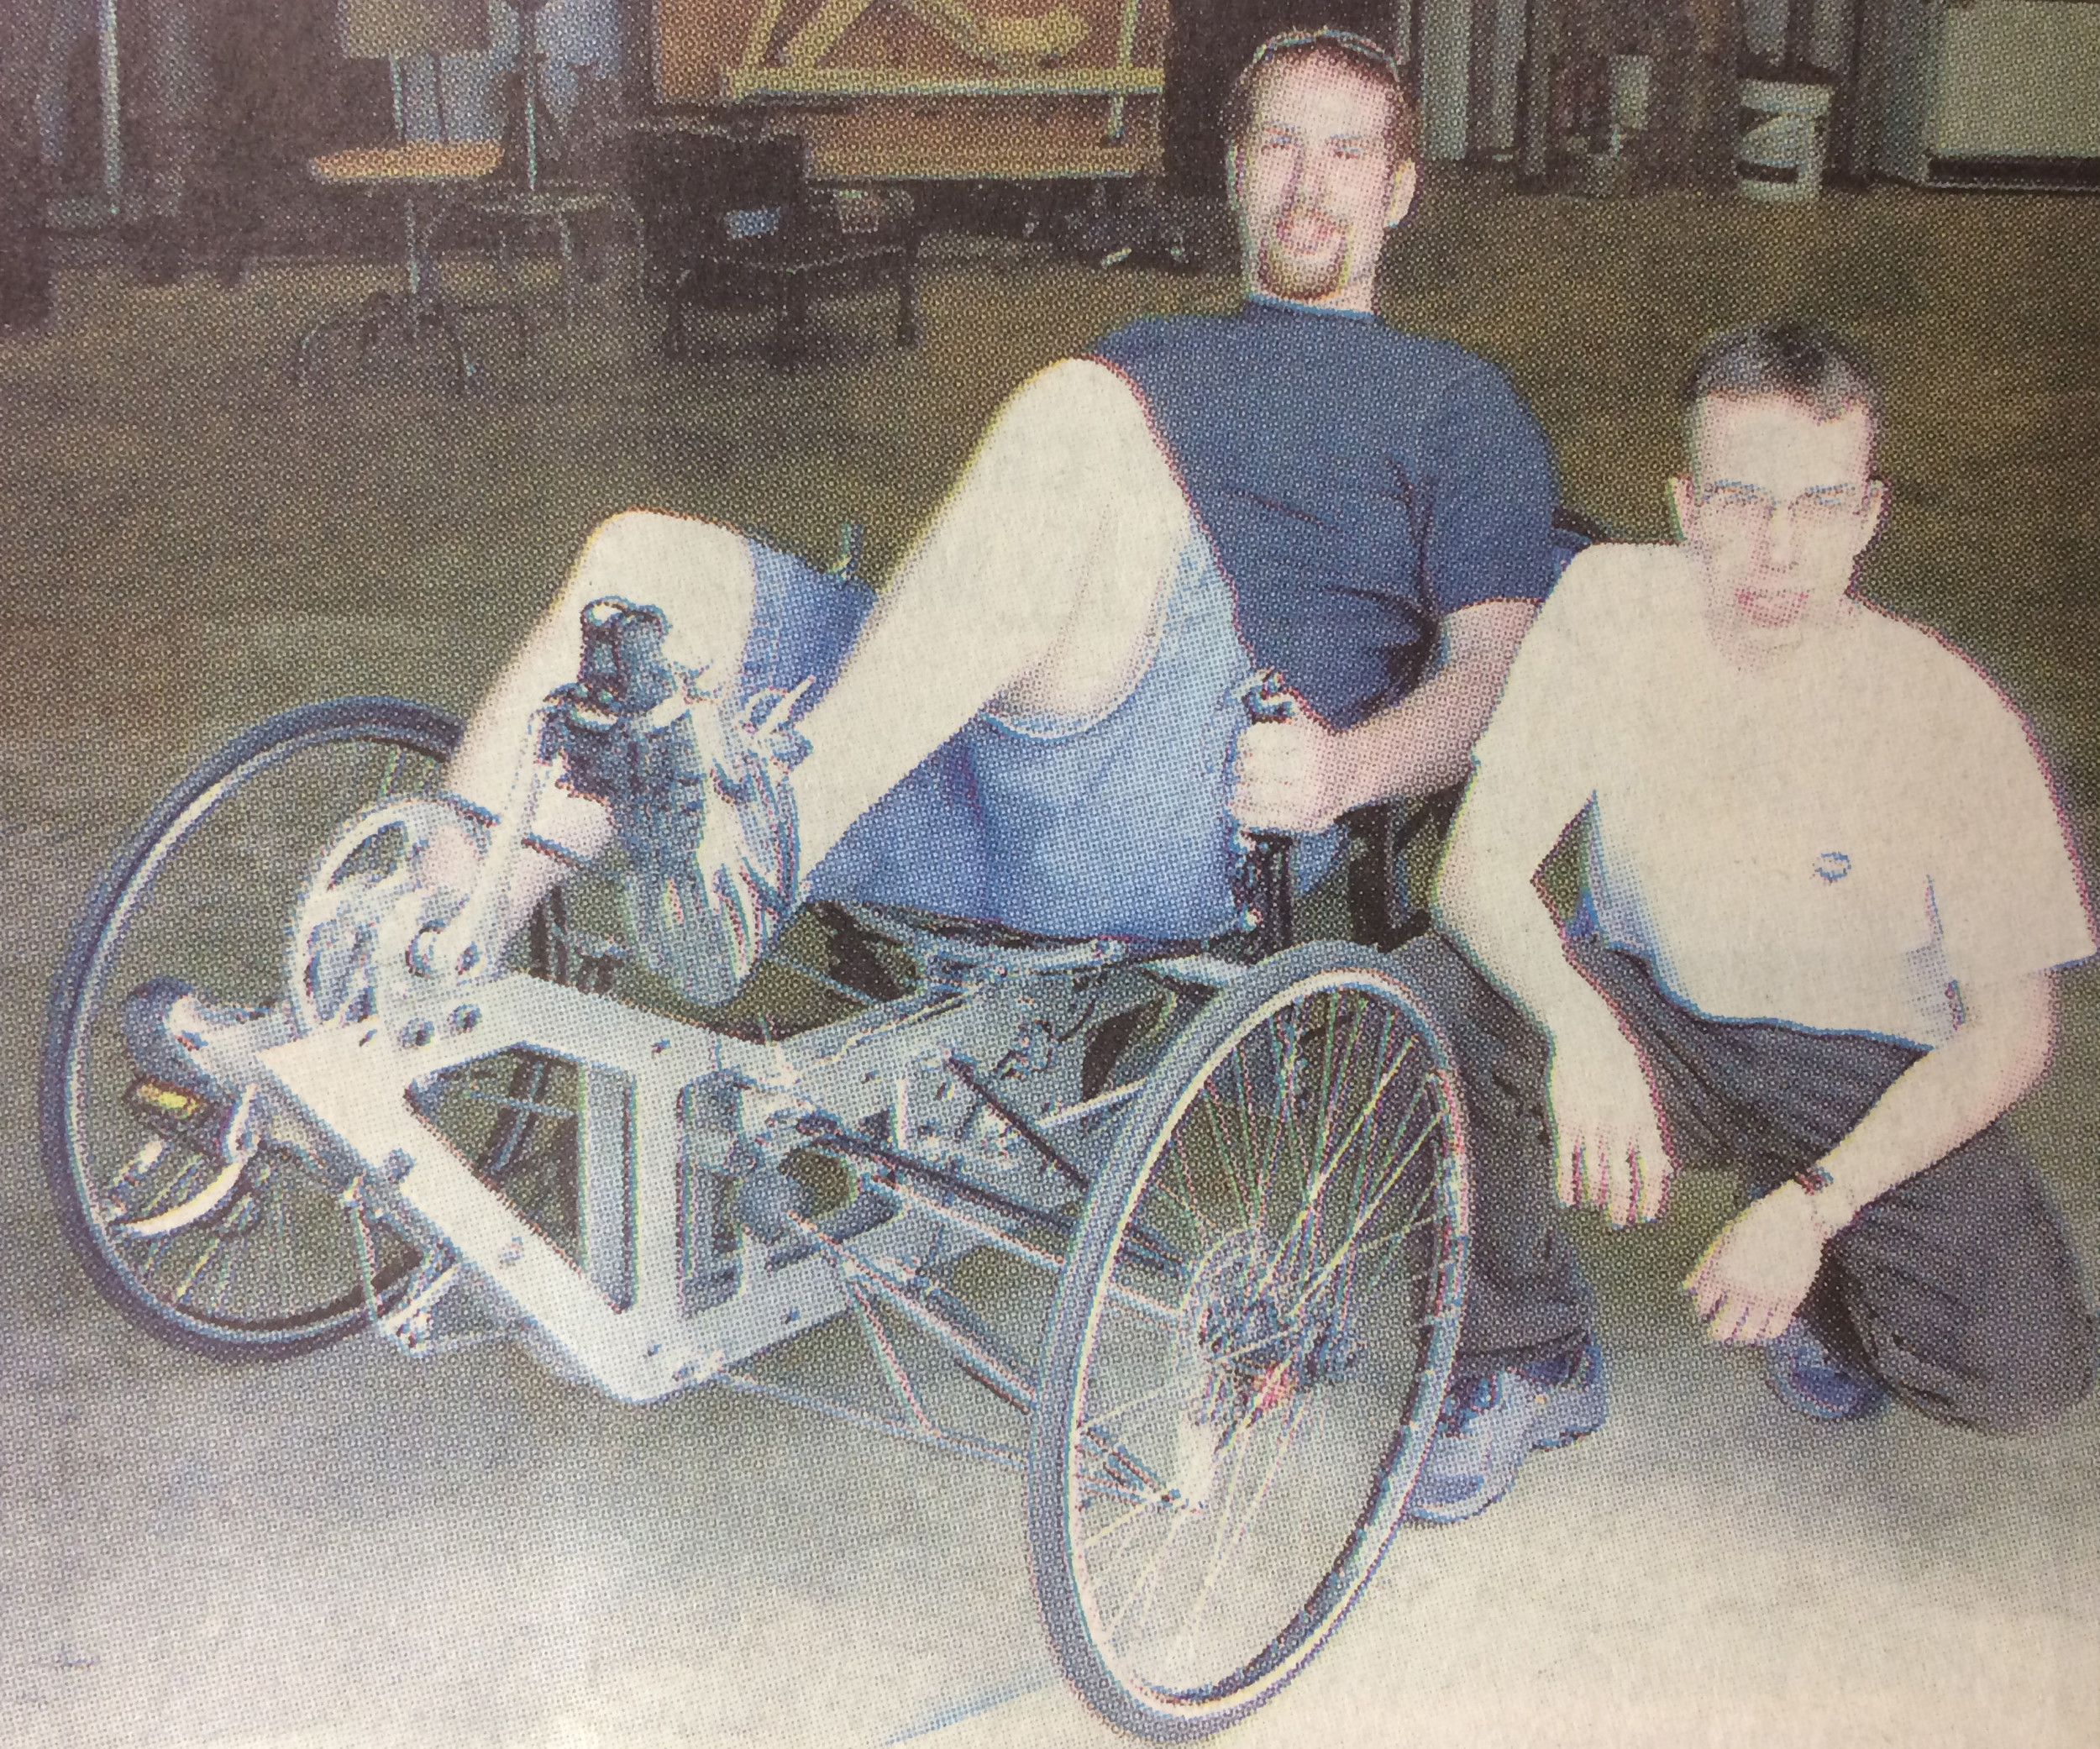 Jonathan Daniels and Andrew Gauker show off their senior engineering project, a human-powered vehicle, a recumbent tricyle design.